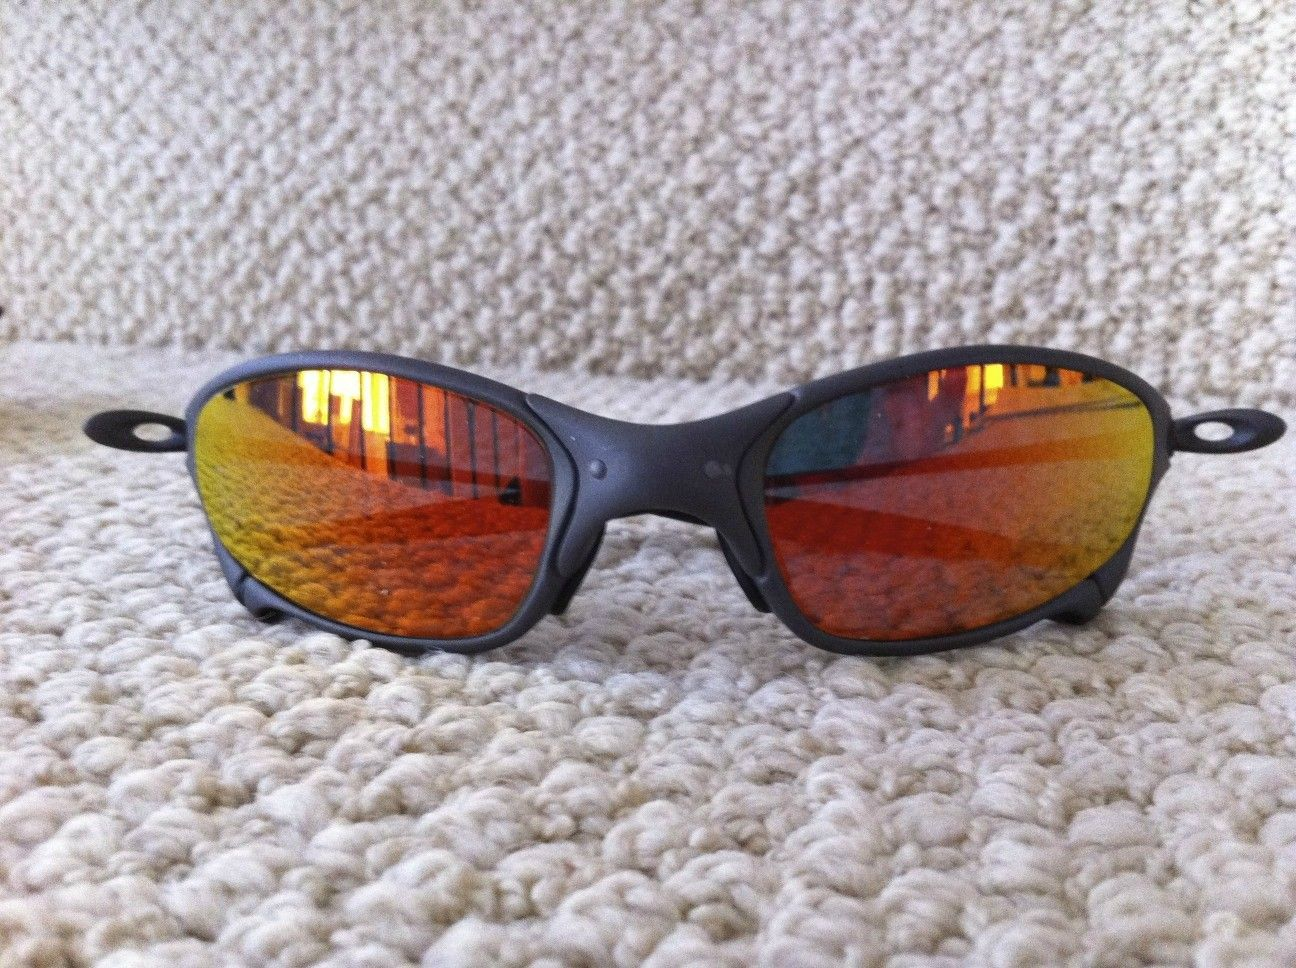 Aftermarket Oakley Prescription Lenses? - prC7V.jpg